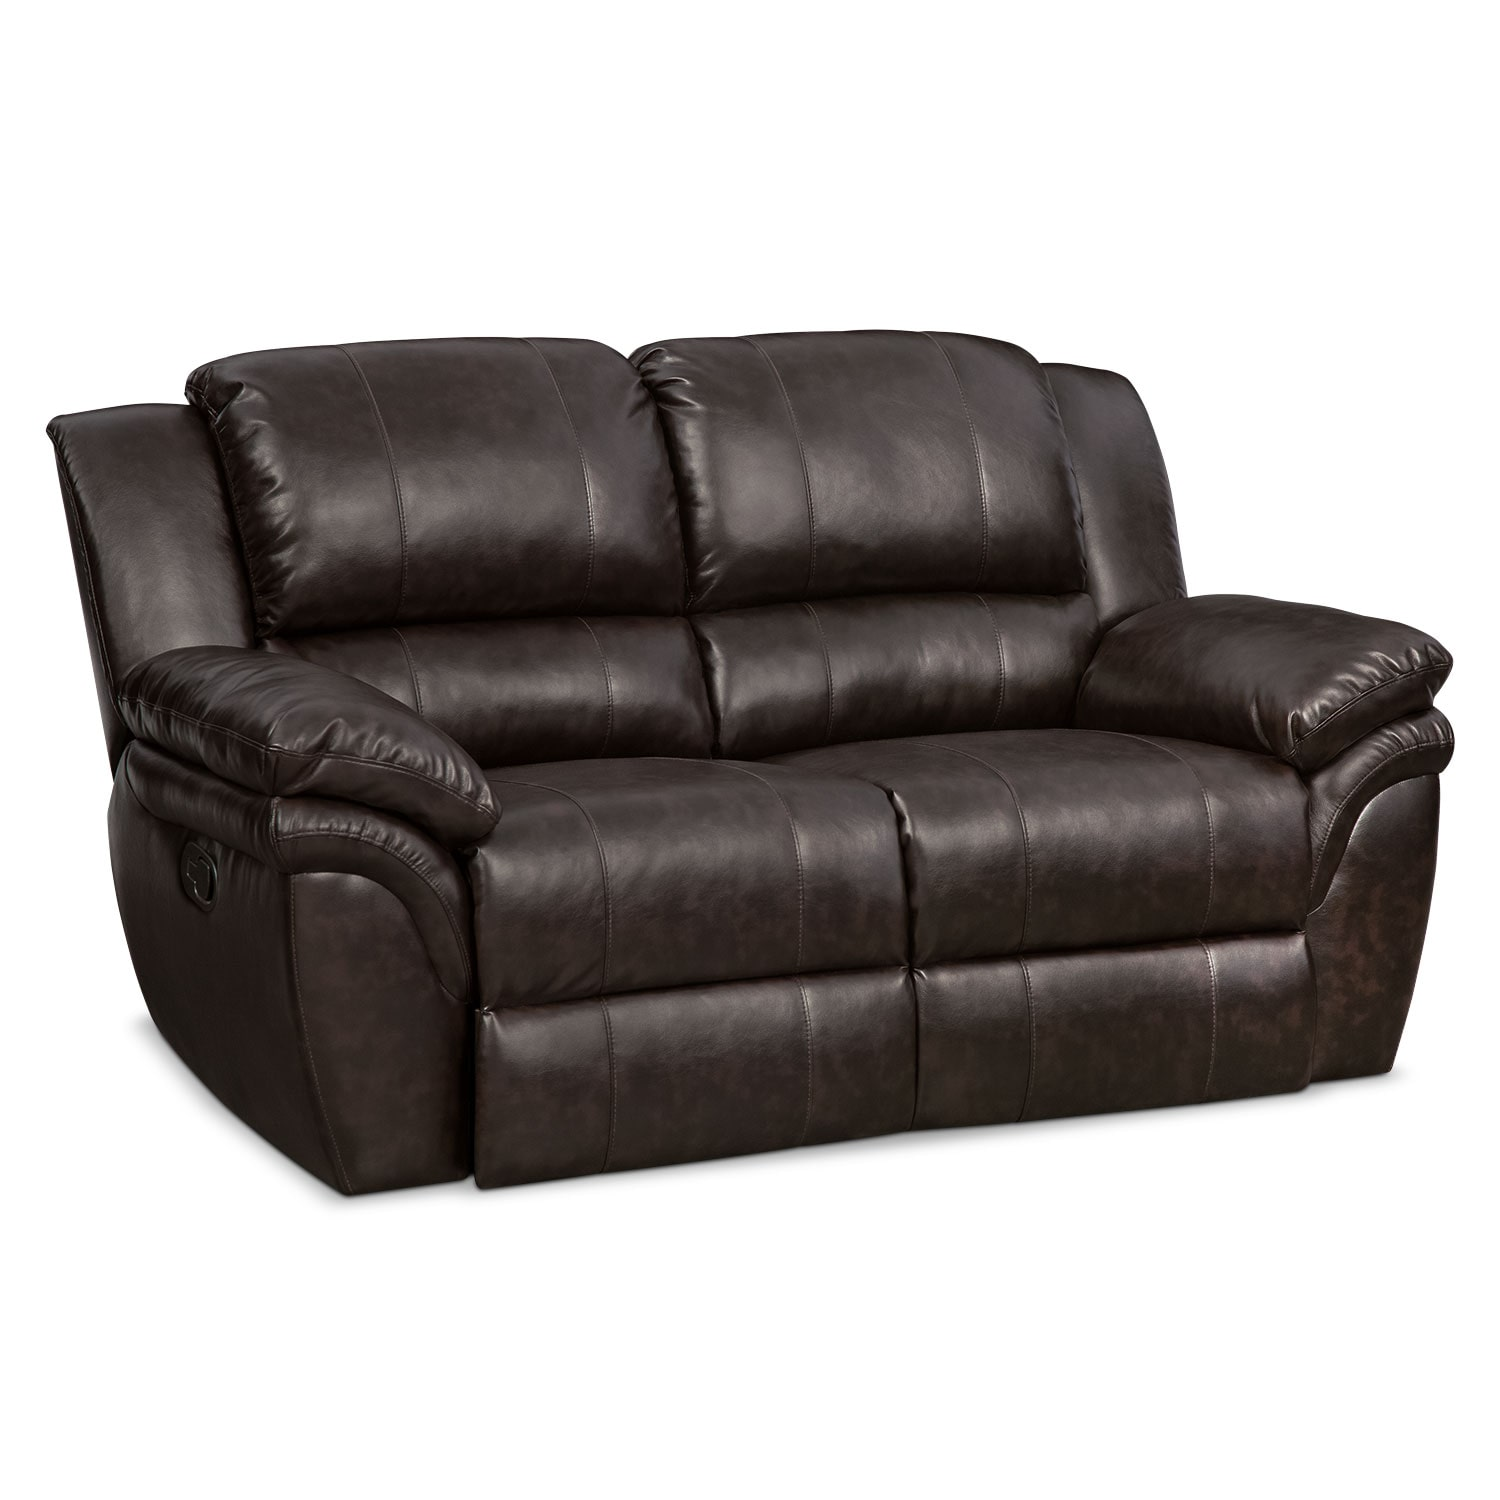 Sofa Set Value City